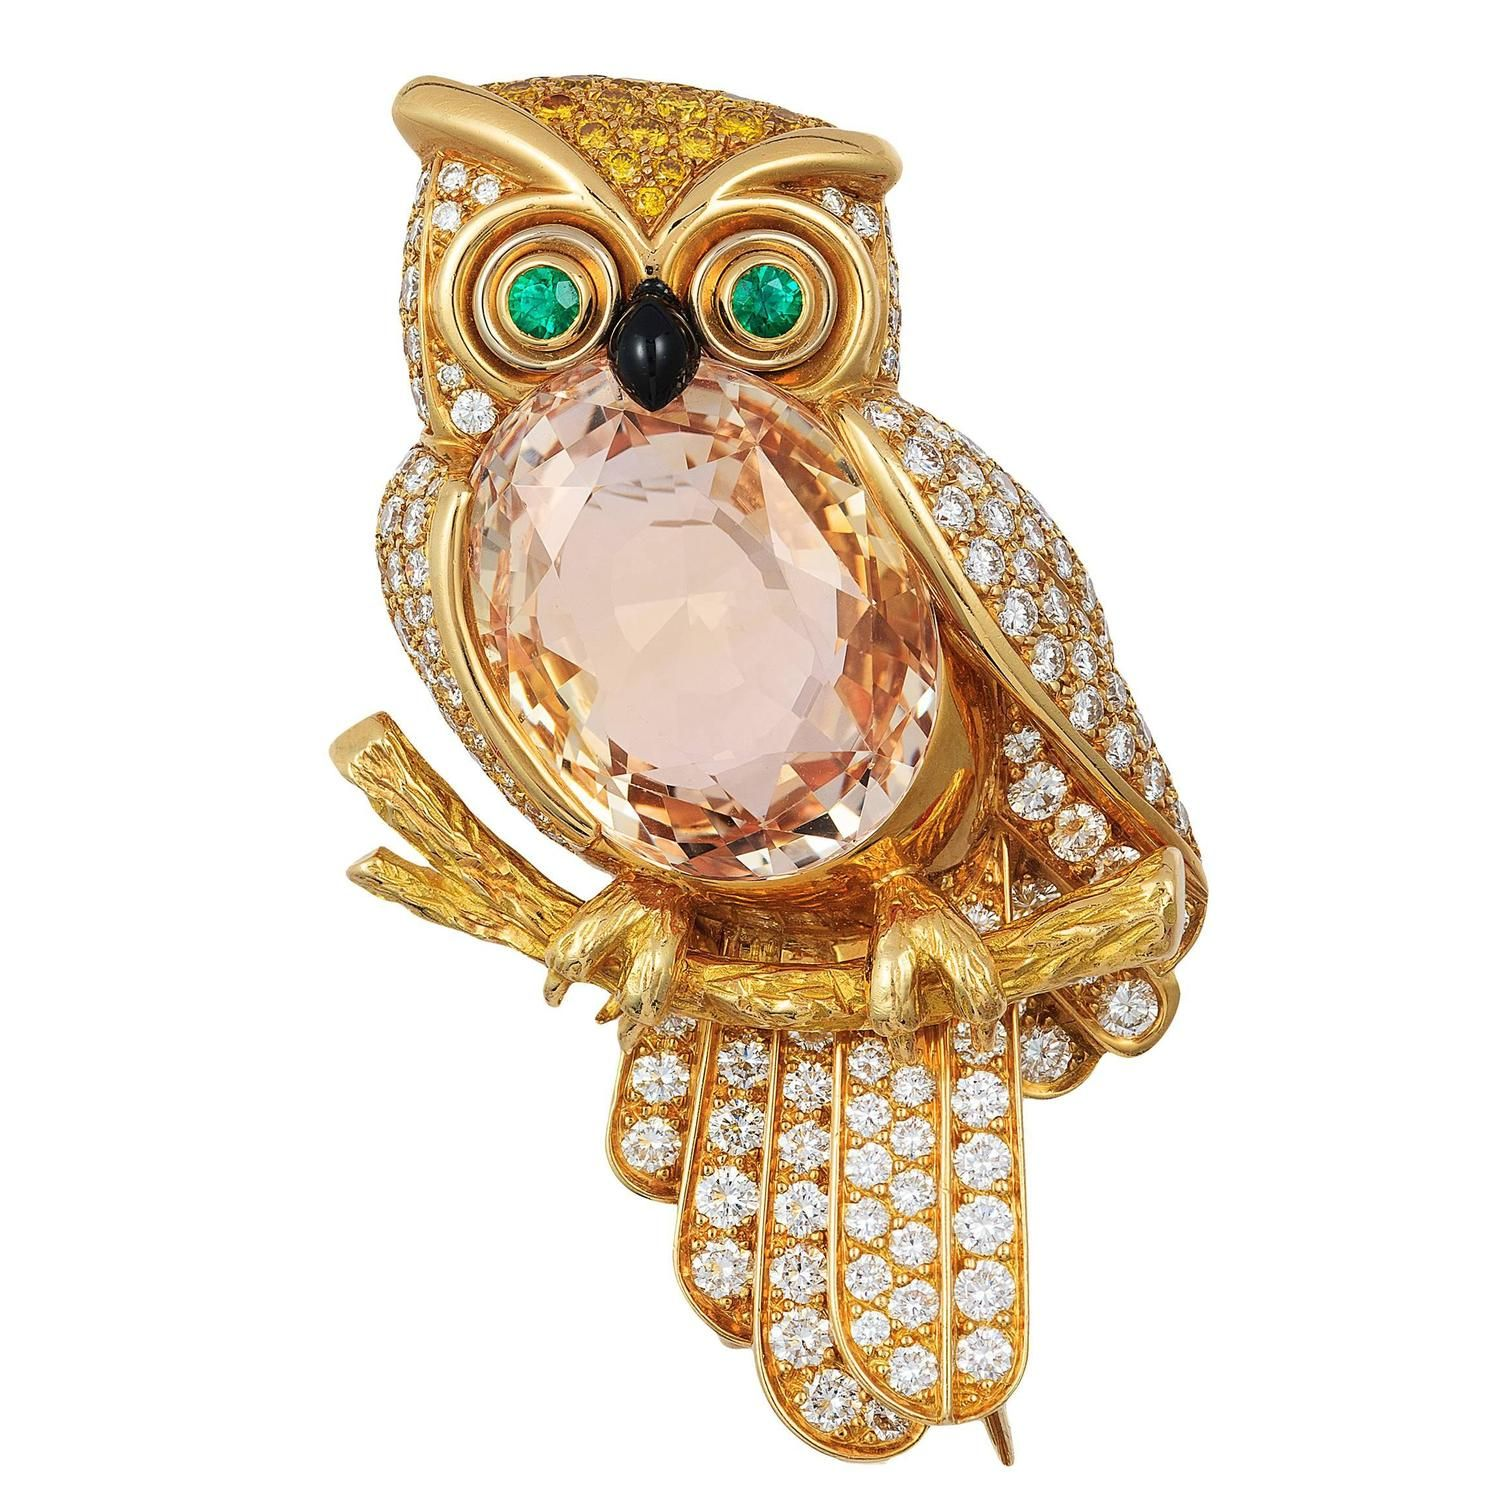 Cartier Orange Sapphire diamond gold Owl Pin | From a unique collection of vintage brooches at https://www.1stdibs.com/jewelry/brooches/brooches/